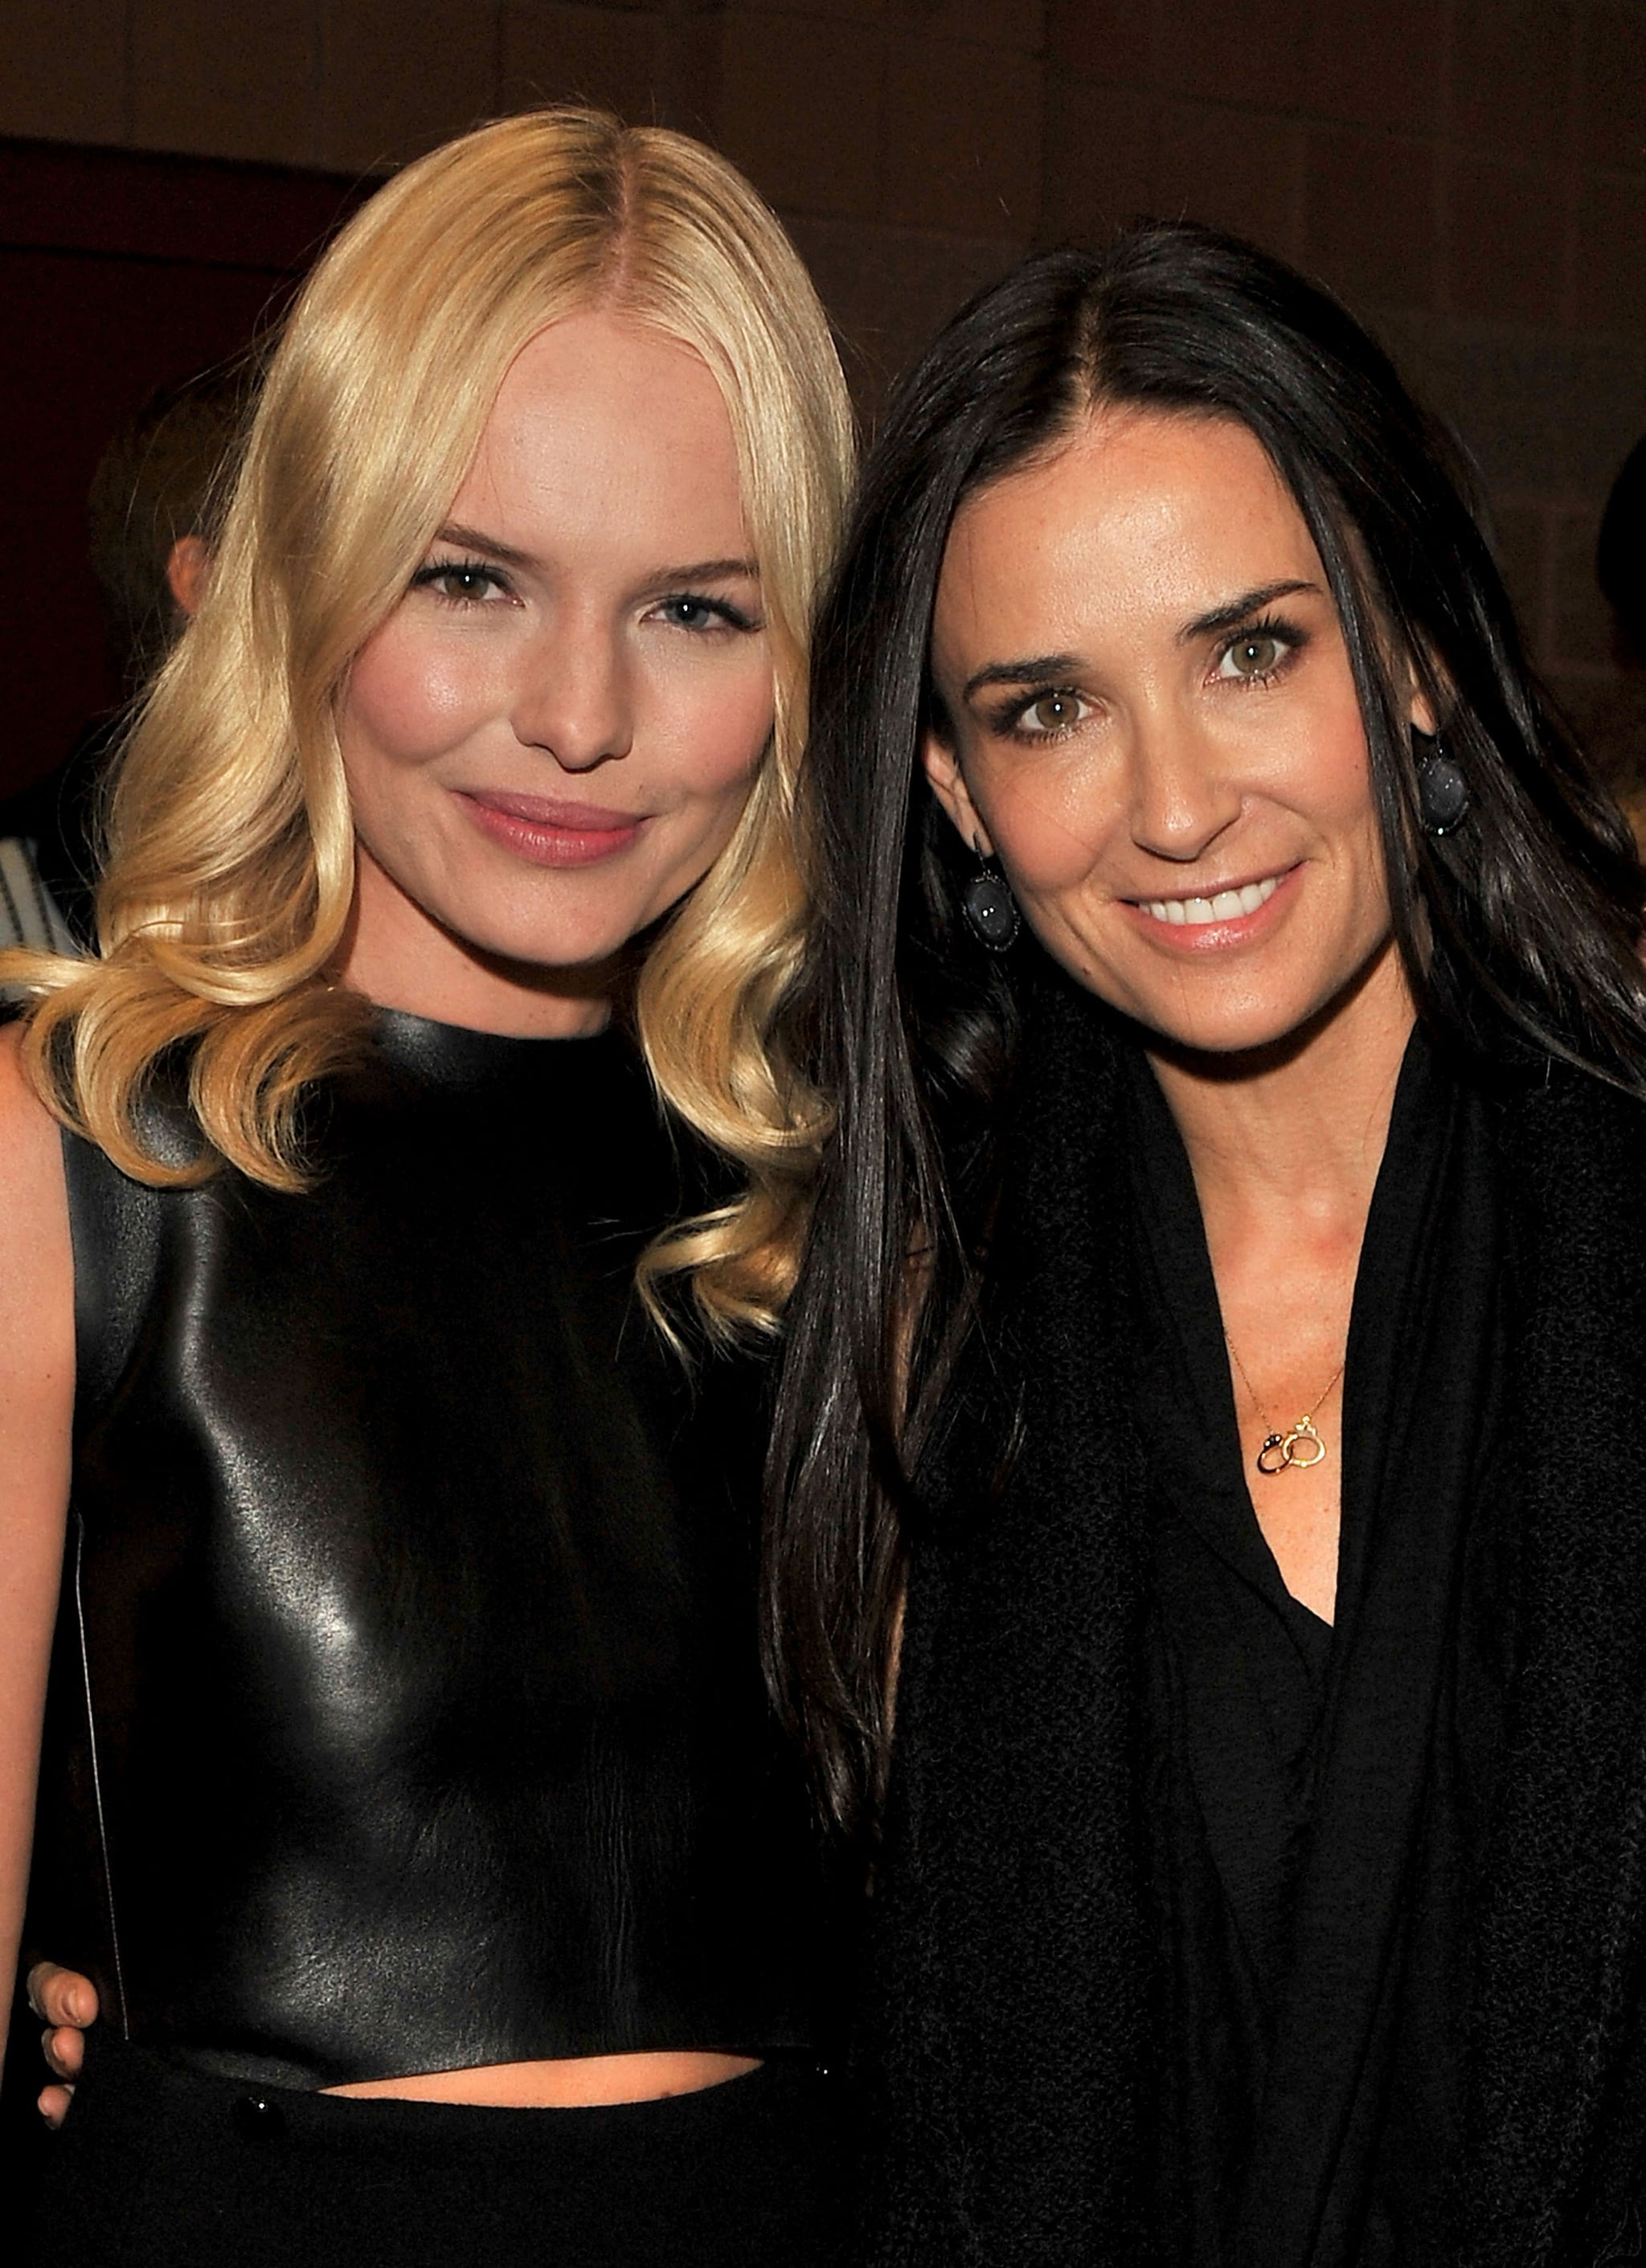 Kate Bosworth and Demi Moore were glowing together at the premiere of Another Happy Day in 2011.